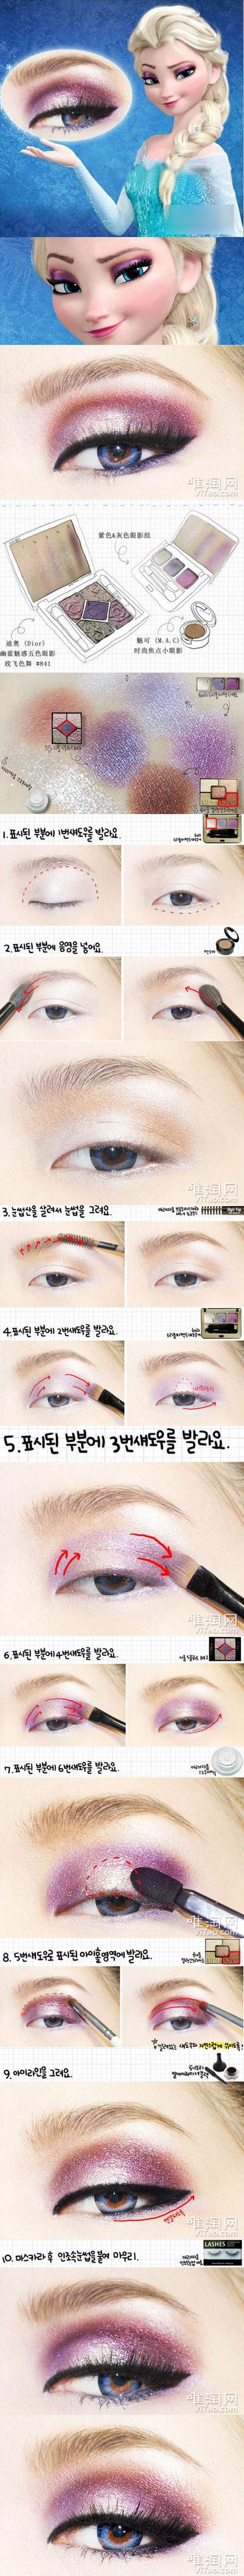 DIY Disney's Frozen Elsa Eyeshadow #beauty #makeup #Elsa